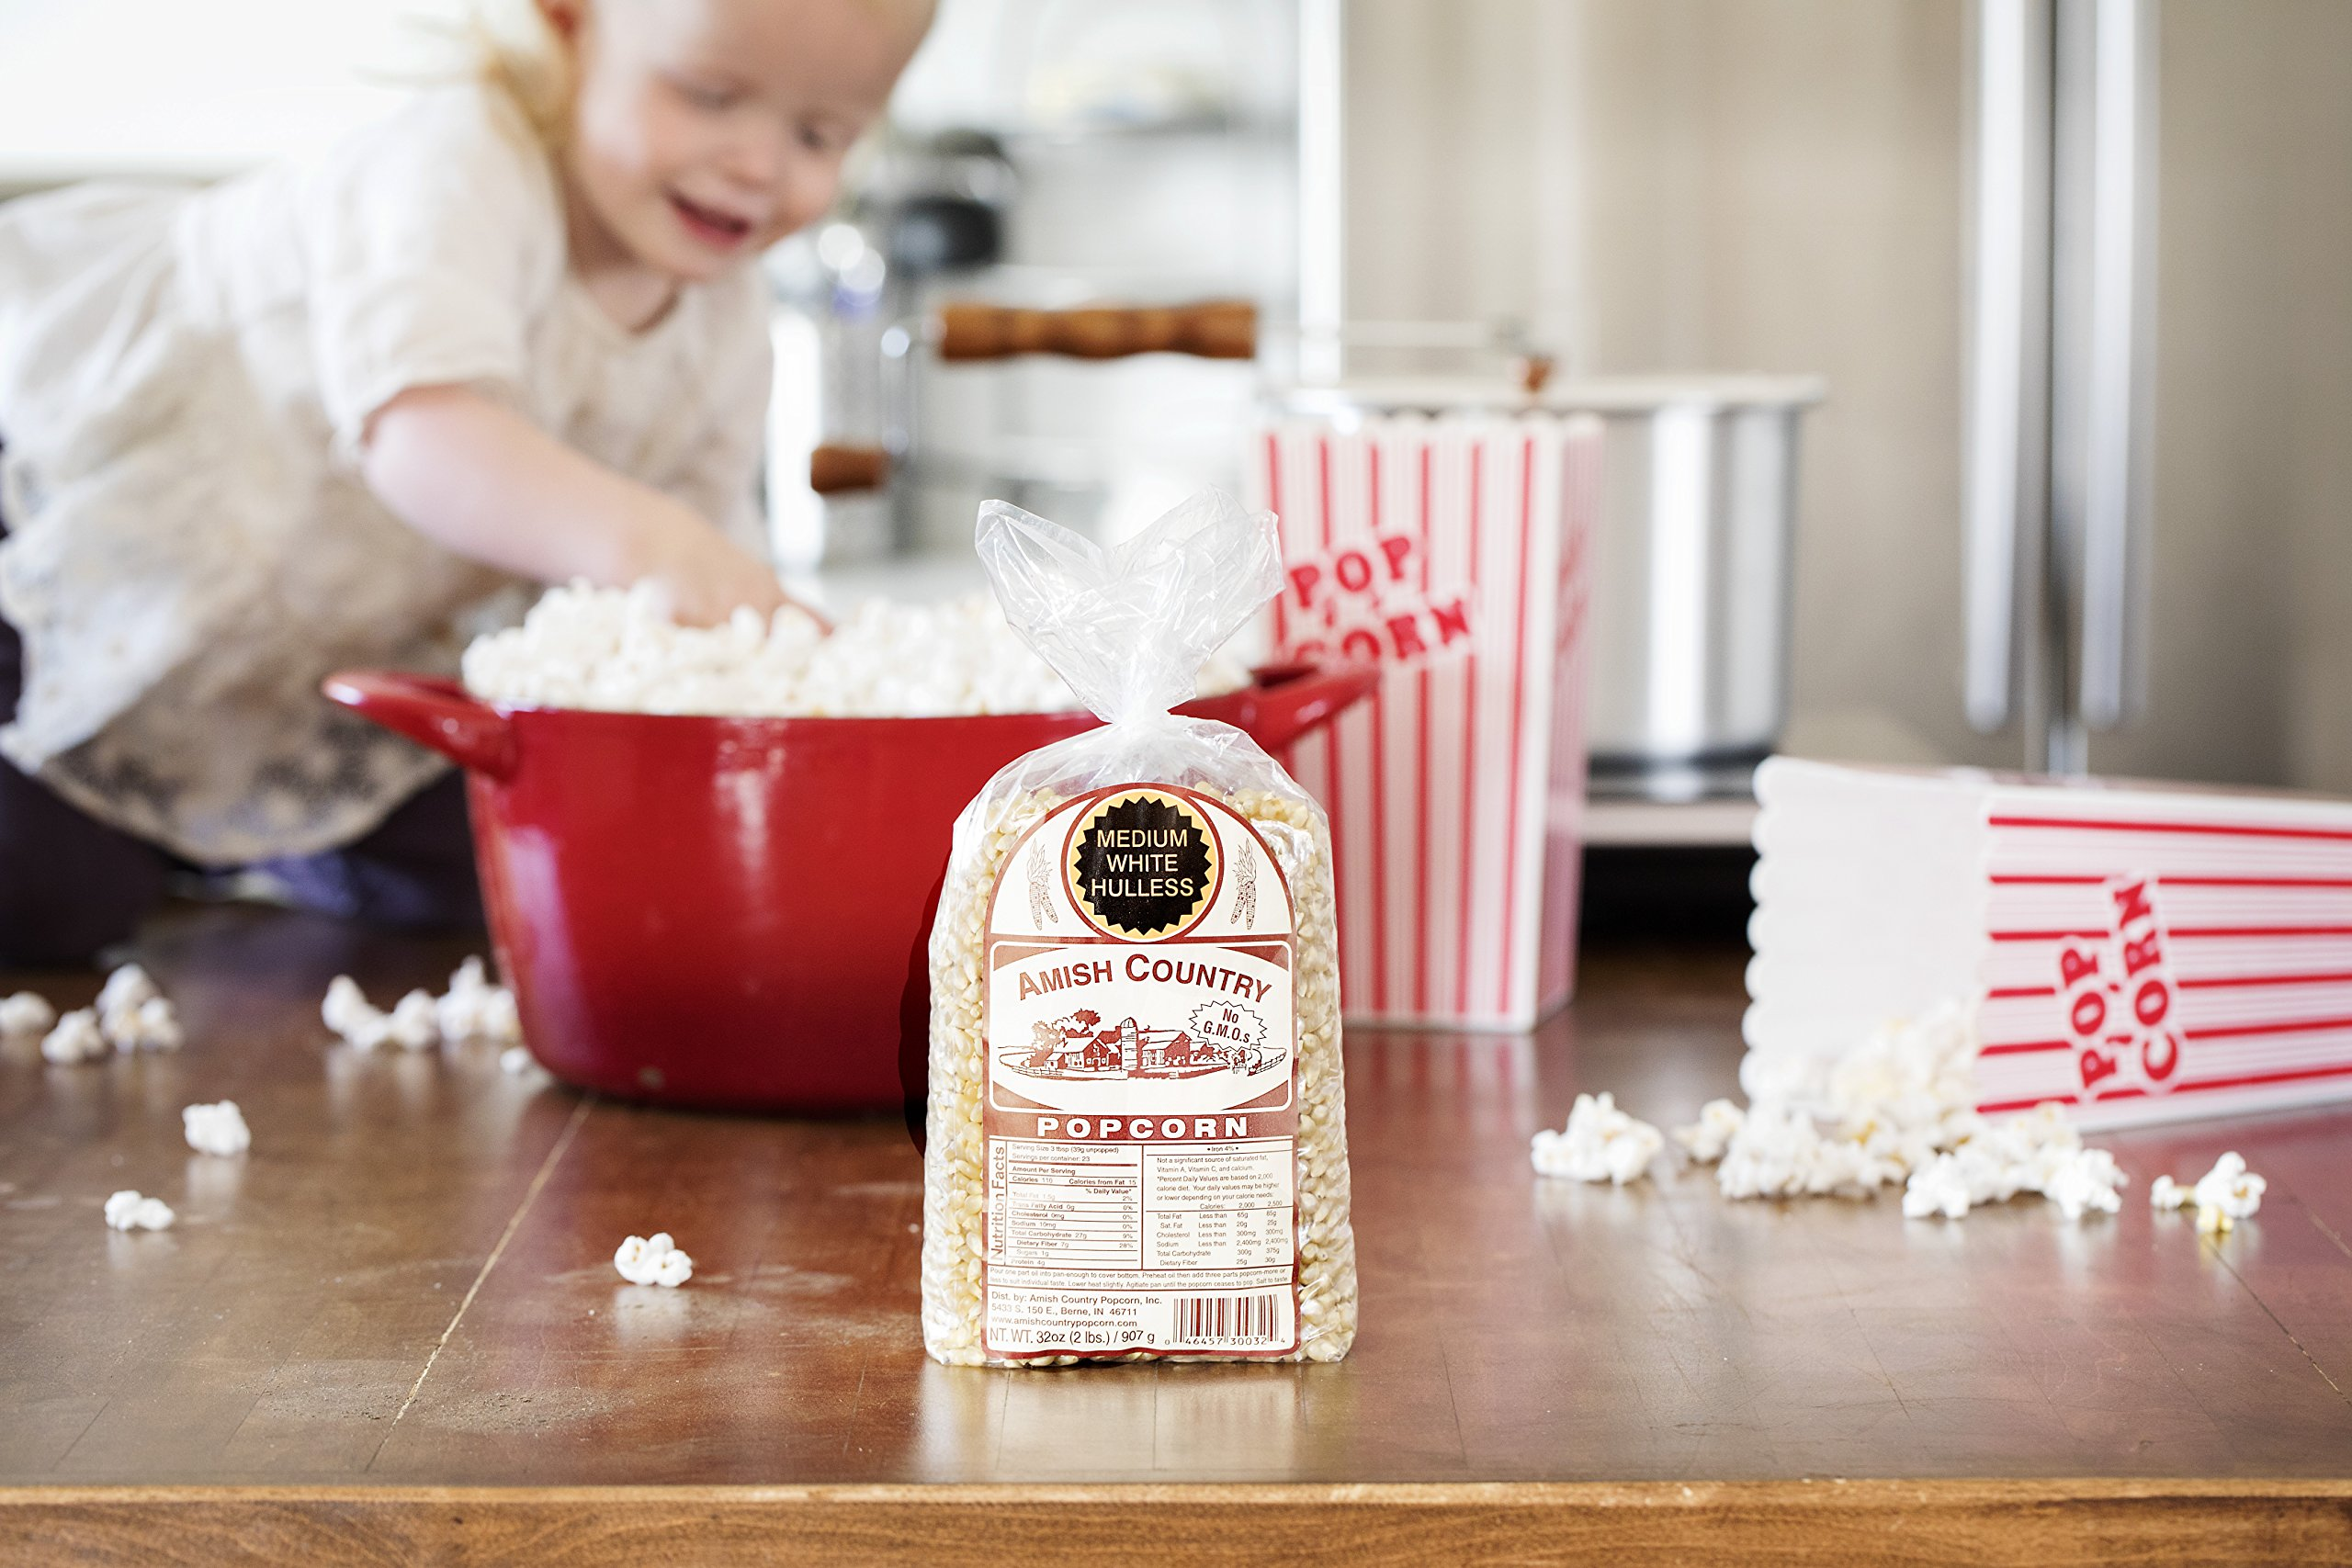 Amish Country Popcorn - Medium White Popcorn (2 Pound Bag) Old Fashioned, Non GMO, and Gluten Free - with Recipe Guide by Amish Country Popcorn (Image #6)